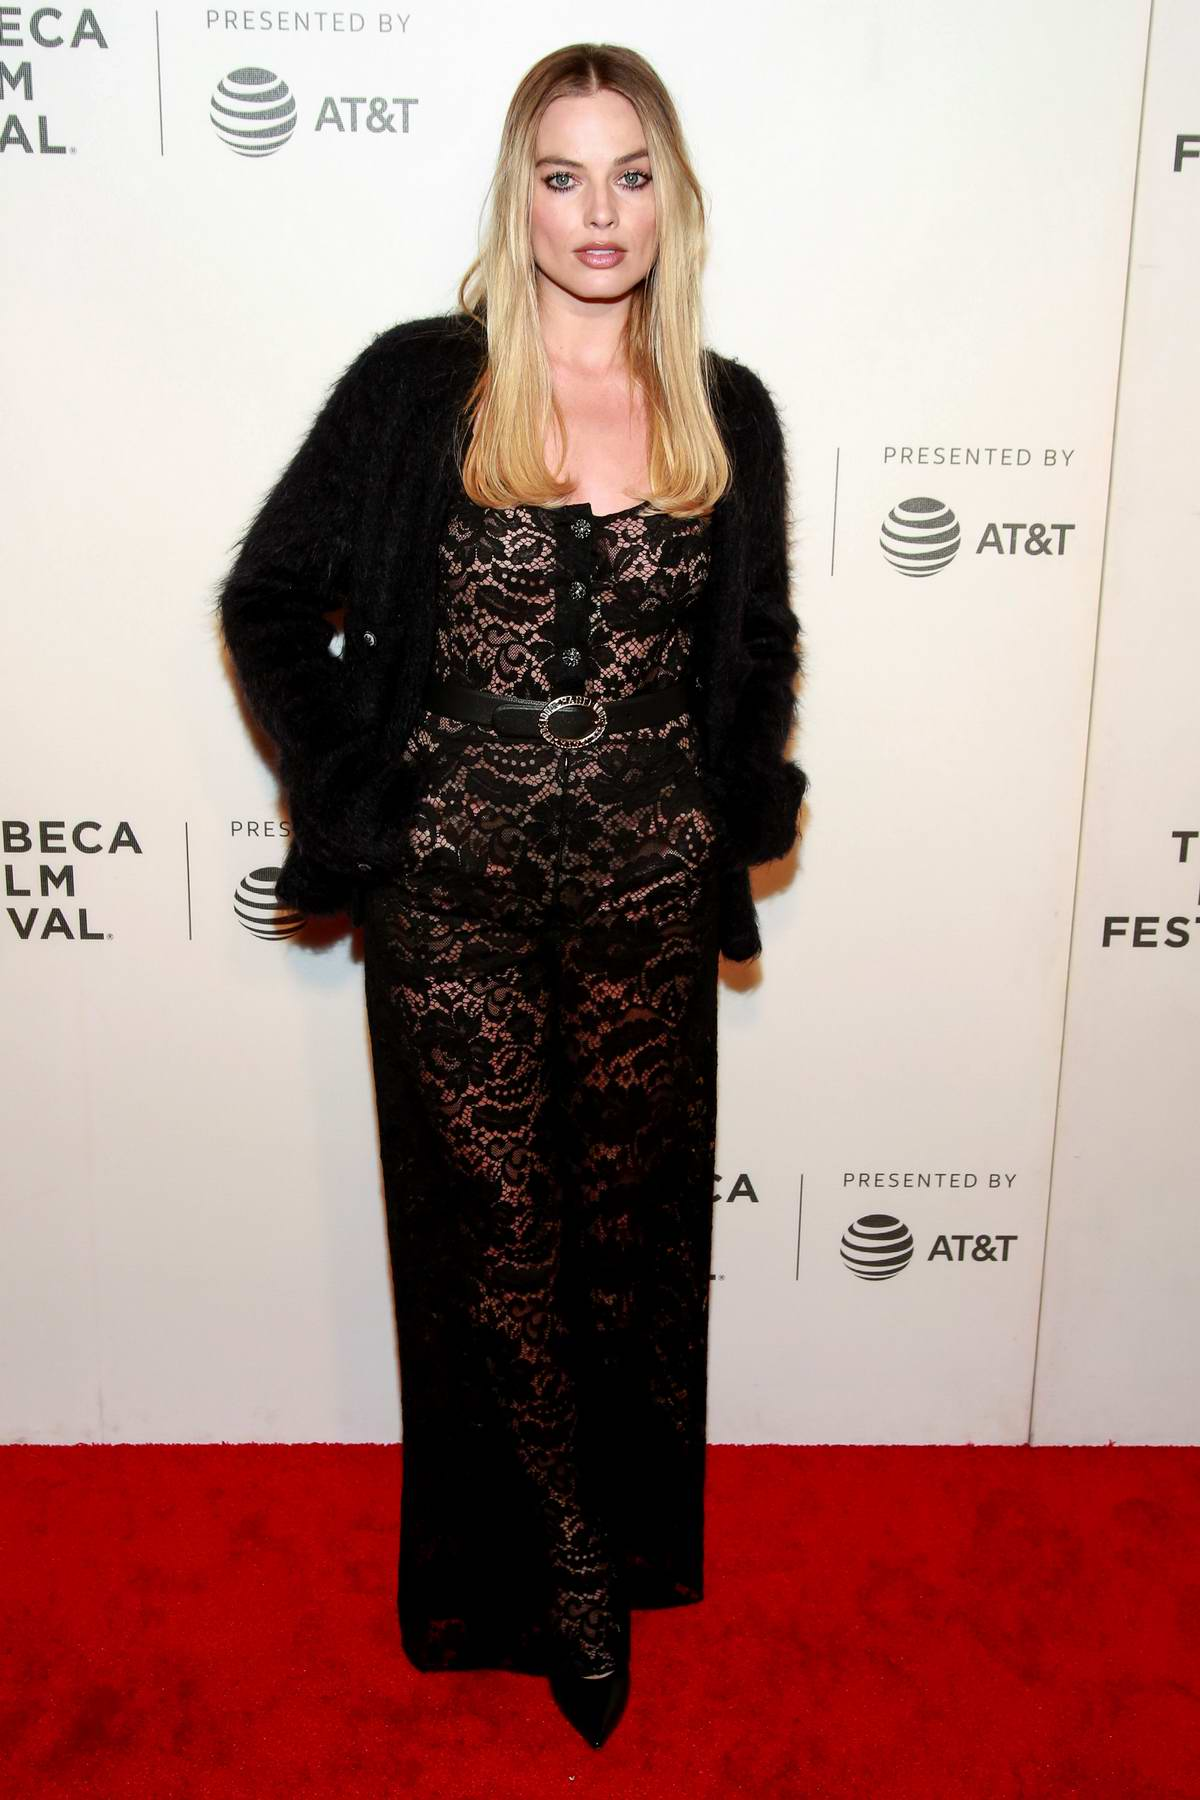 Margot Robbie attends 'Dreamland' premiere at the 2019 Tribeca Film Festival in New York City